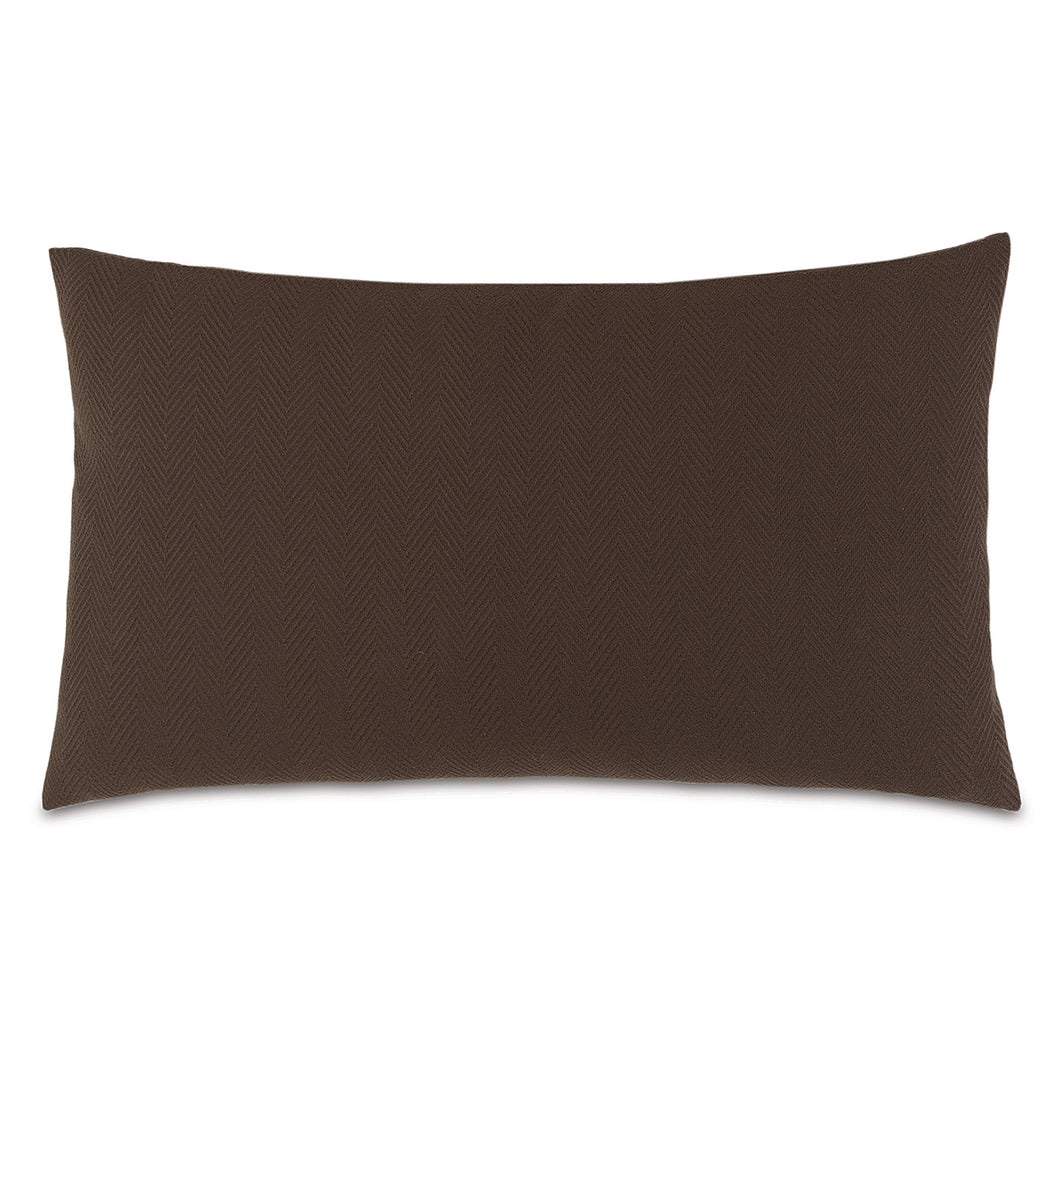 Chalet Alpine Russet Solid Brown Lodge King Sham Knife Edge 21